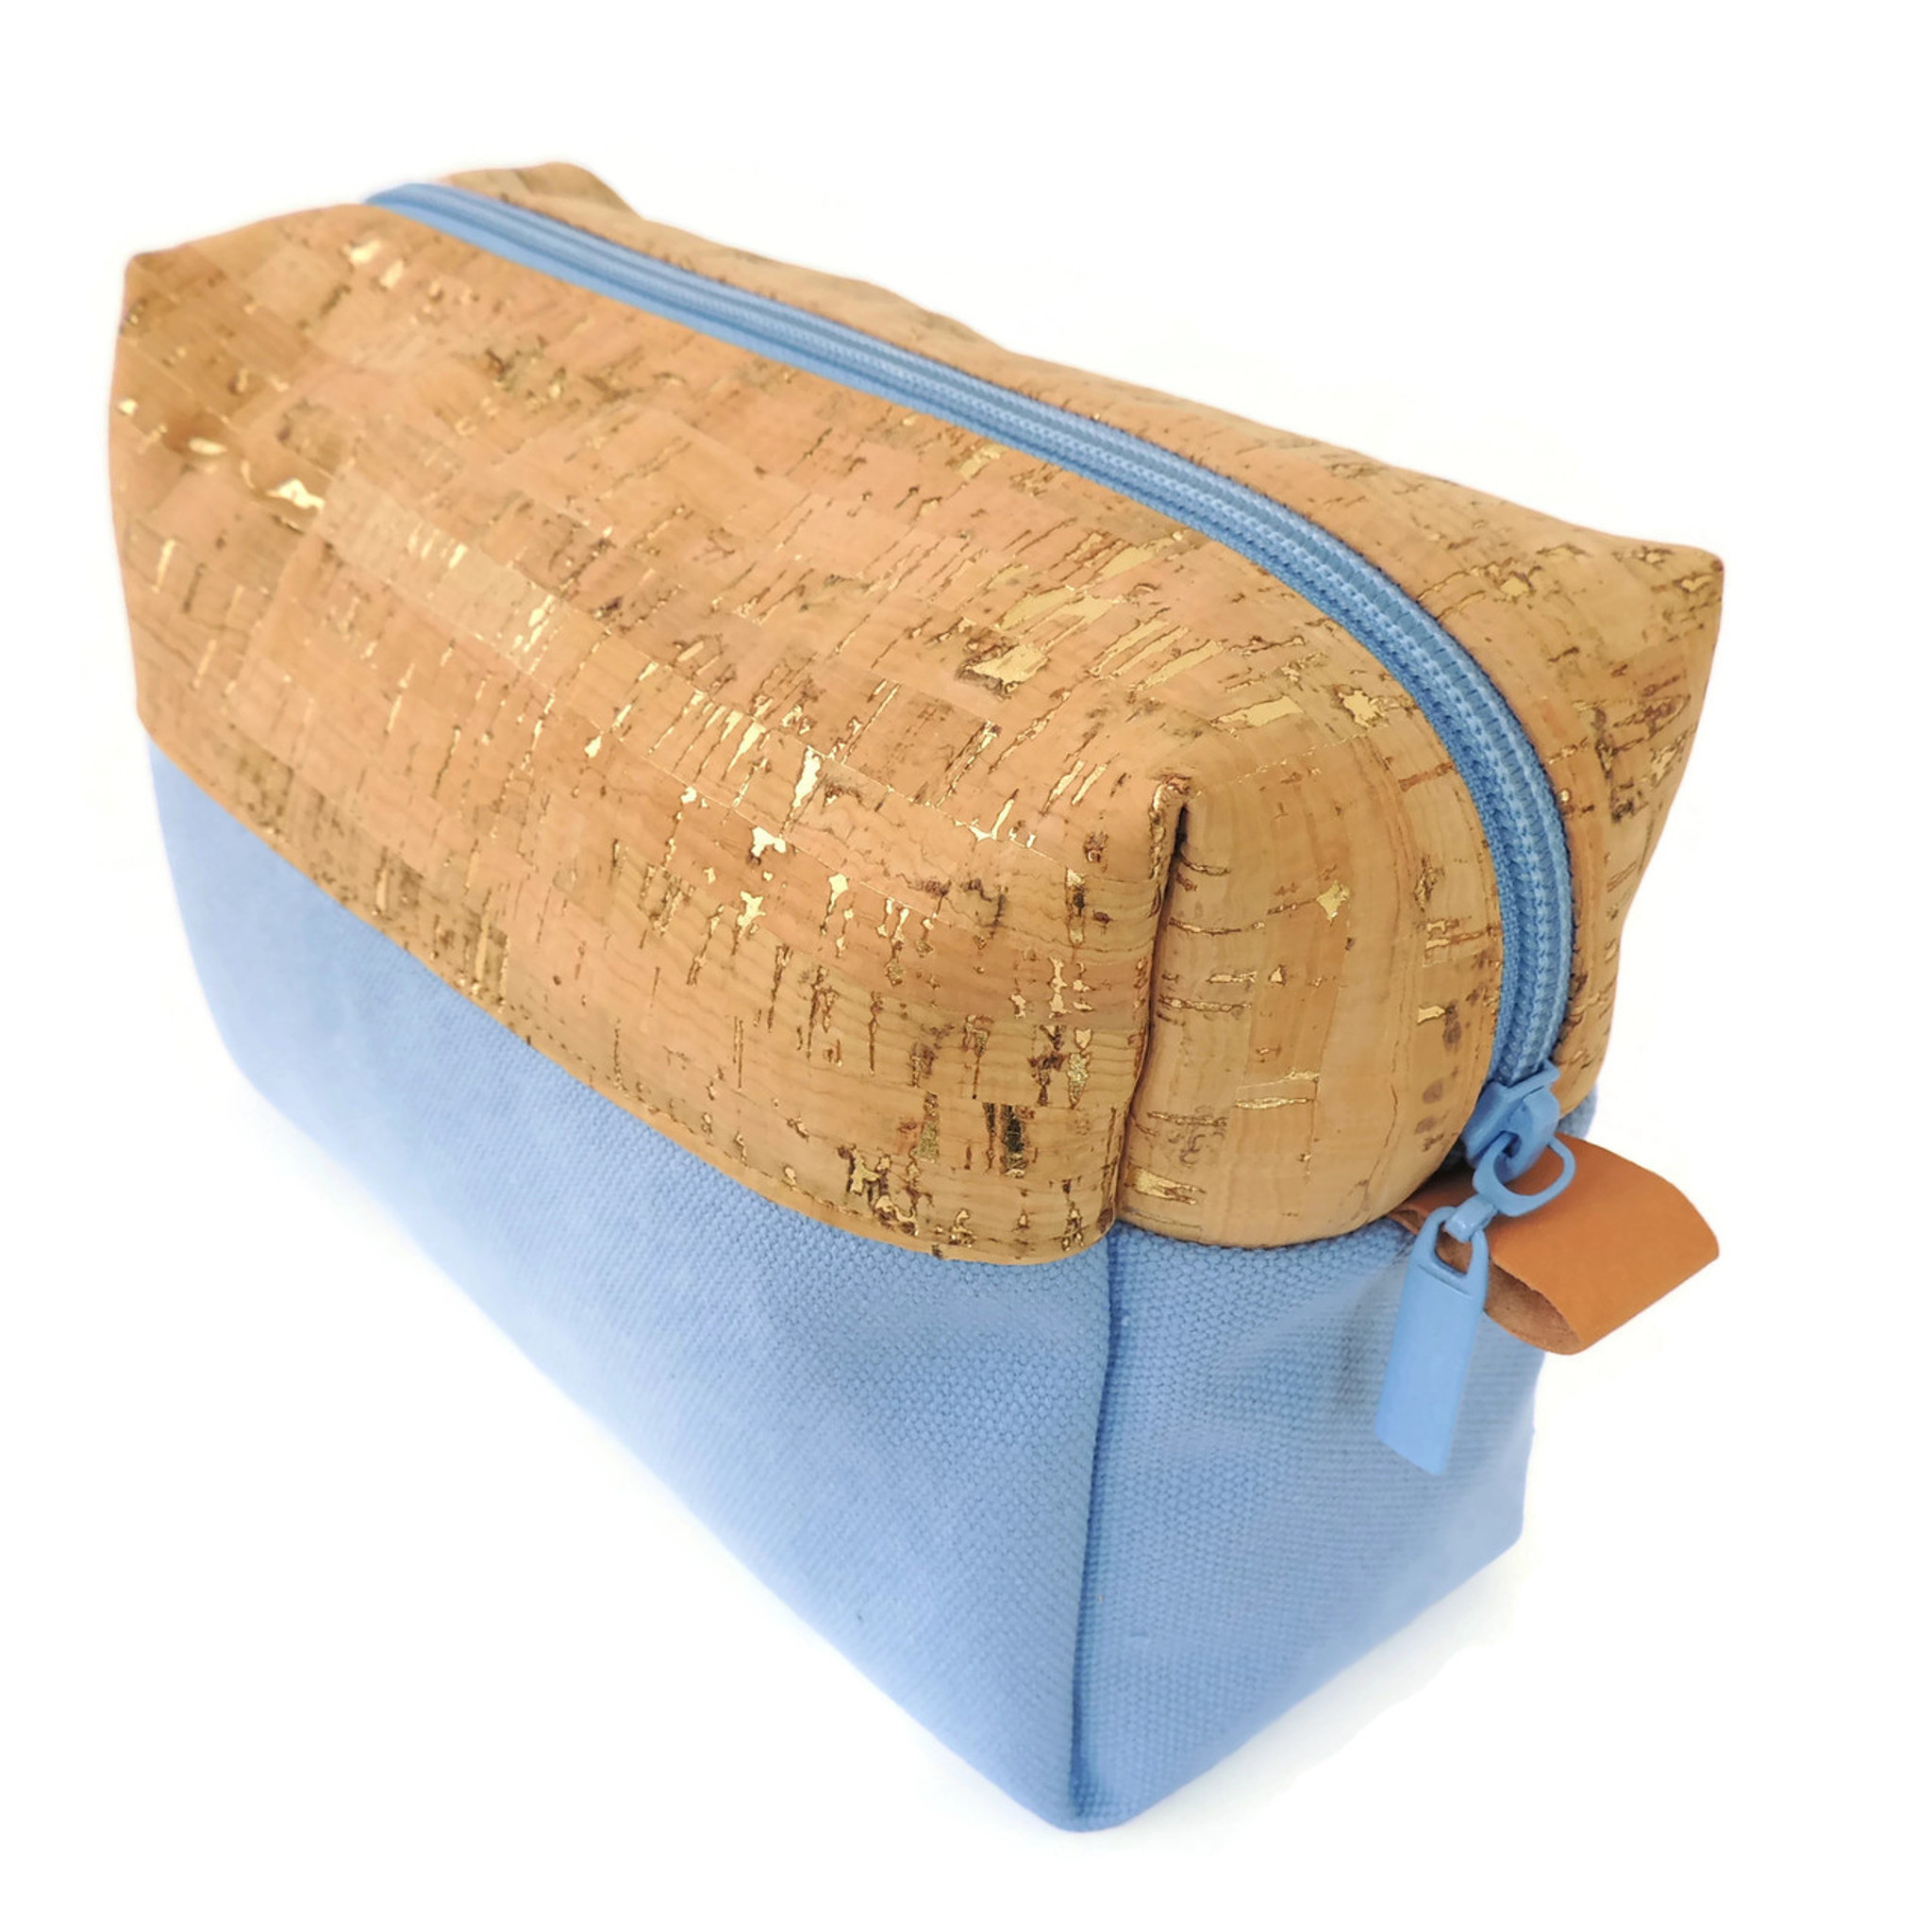 Makeup Bag in Cork Dash Gold with Sky Blue Canvas